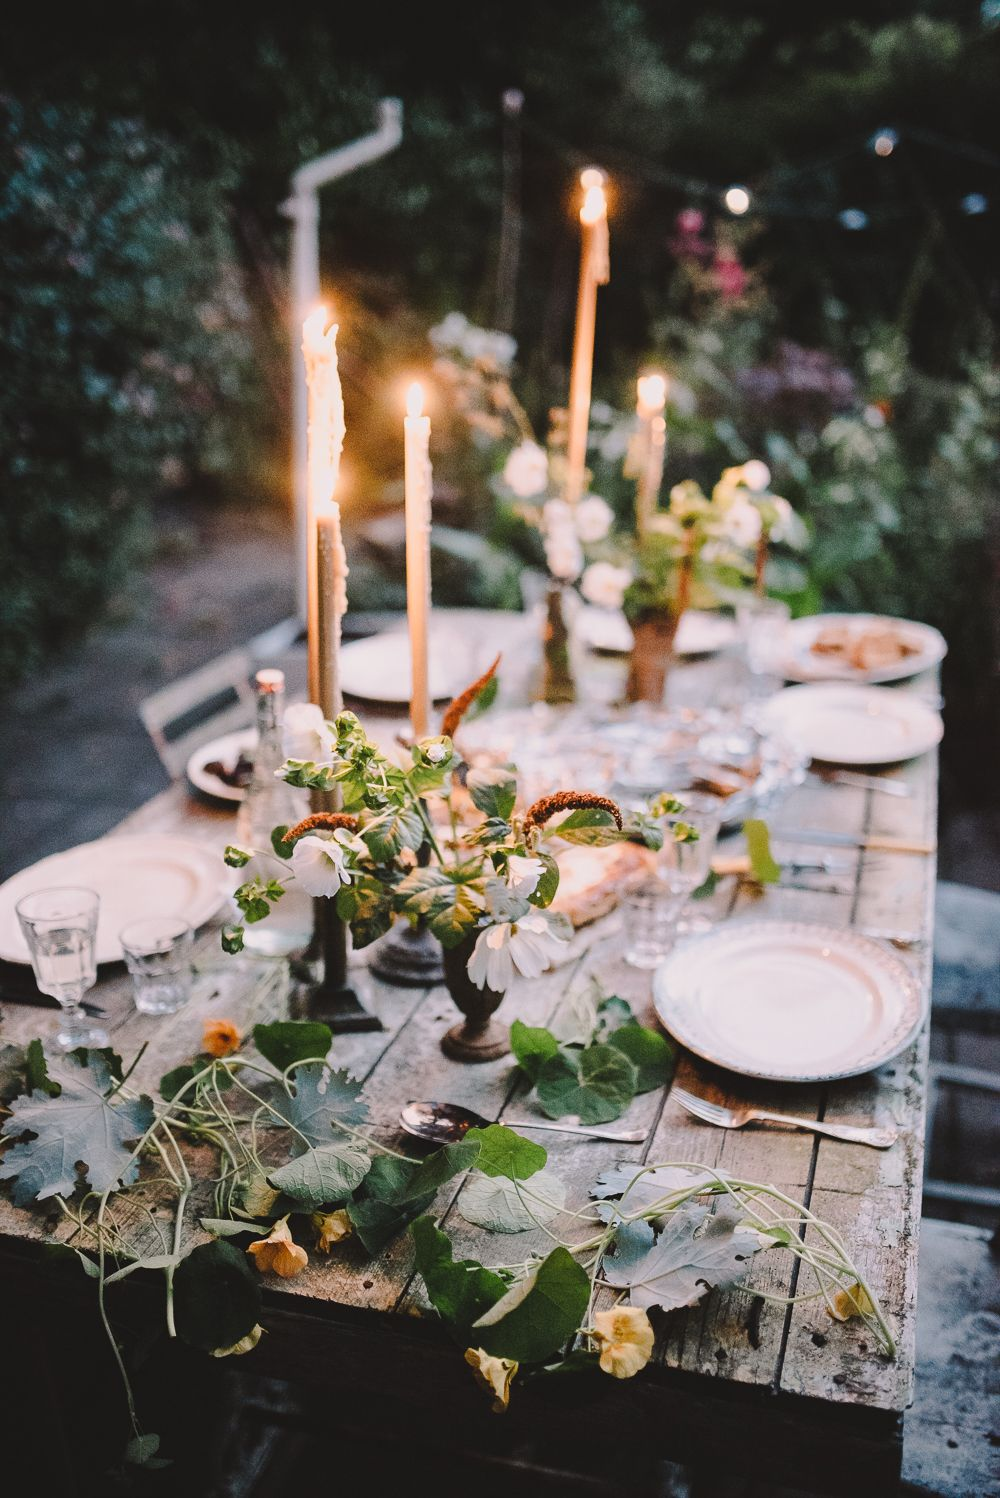 Late Summer Romantic Natural Wedding Flowers By Jo Flowers Outdoor Wedding Centerpieces Outdoor Dining Table Table Decorations